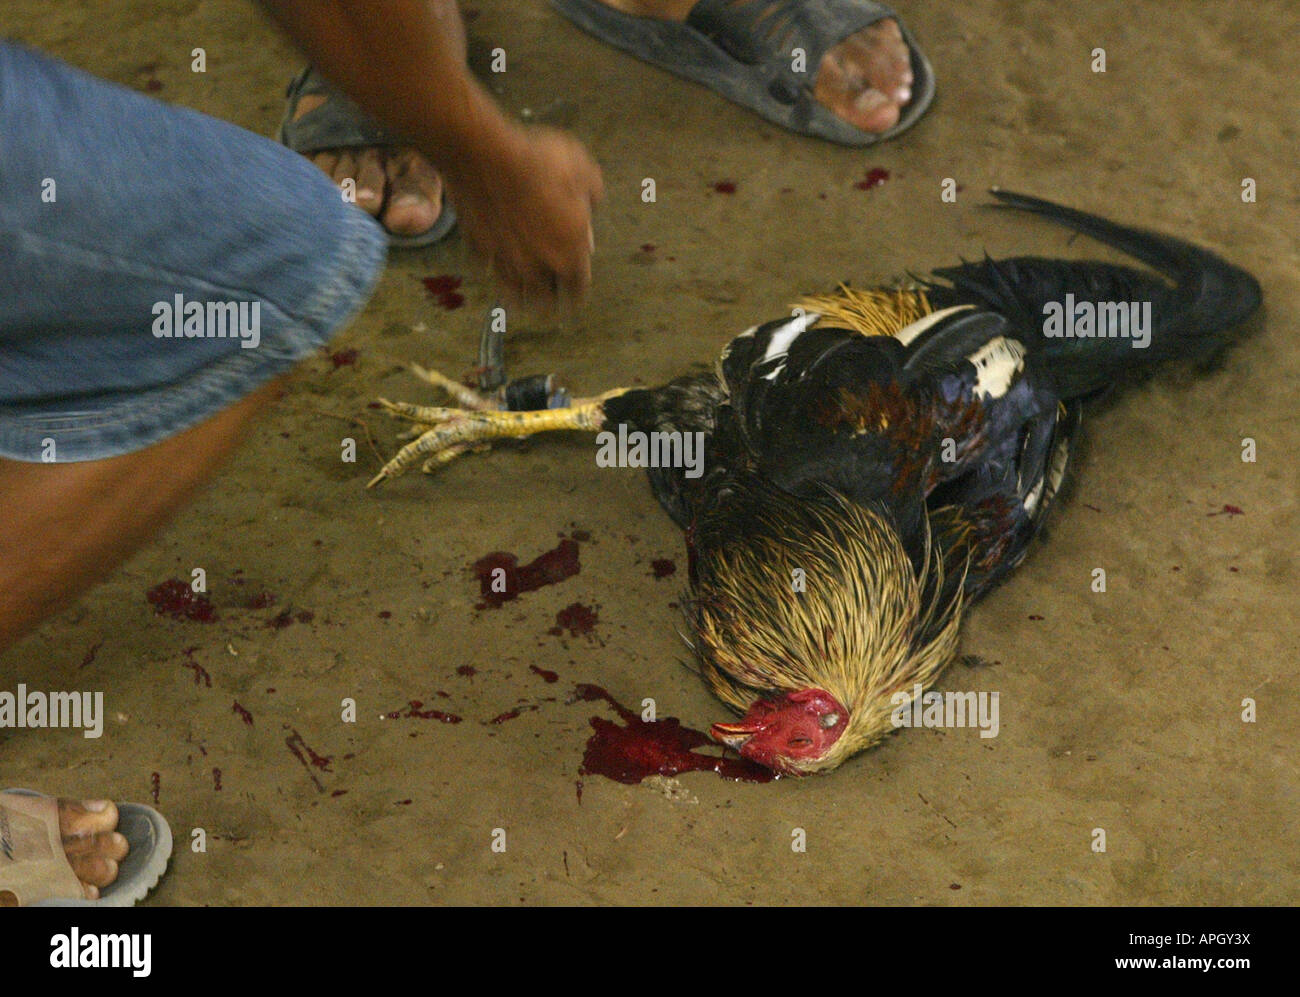 A fatally wounded bird is collected by its owner following a fight at a rural cockhouse in Oriental Mindoro, Philippines. Stock Photo